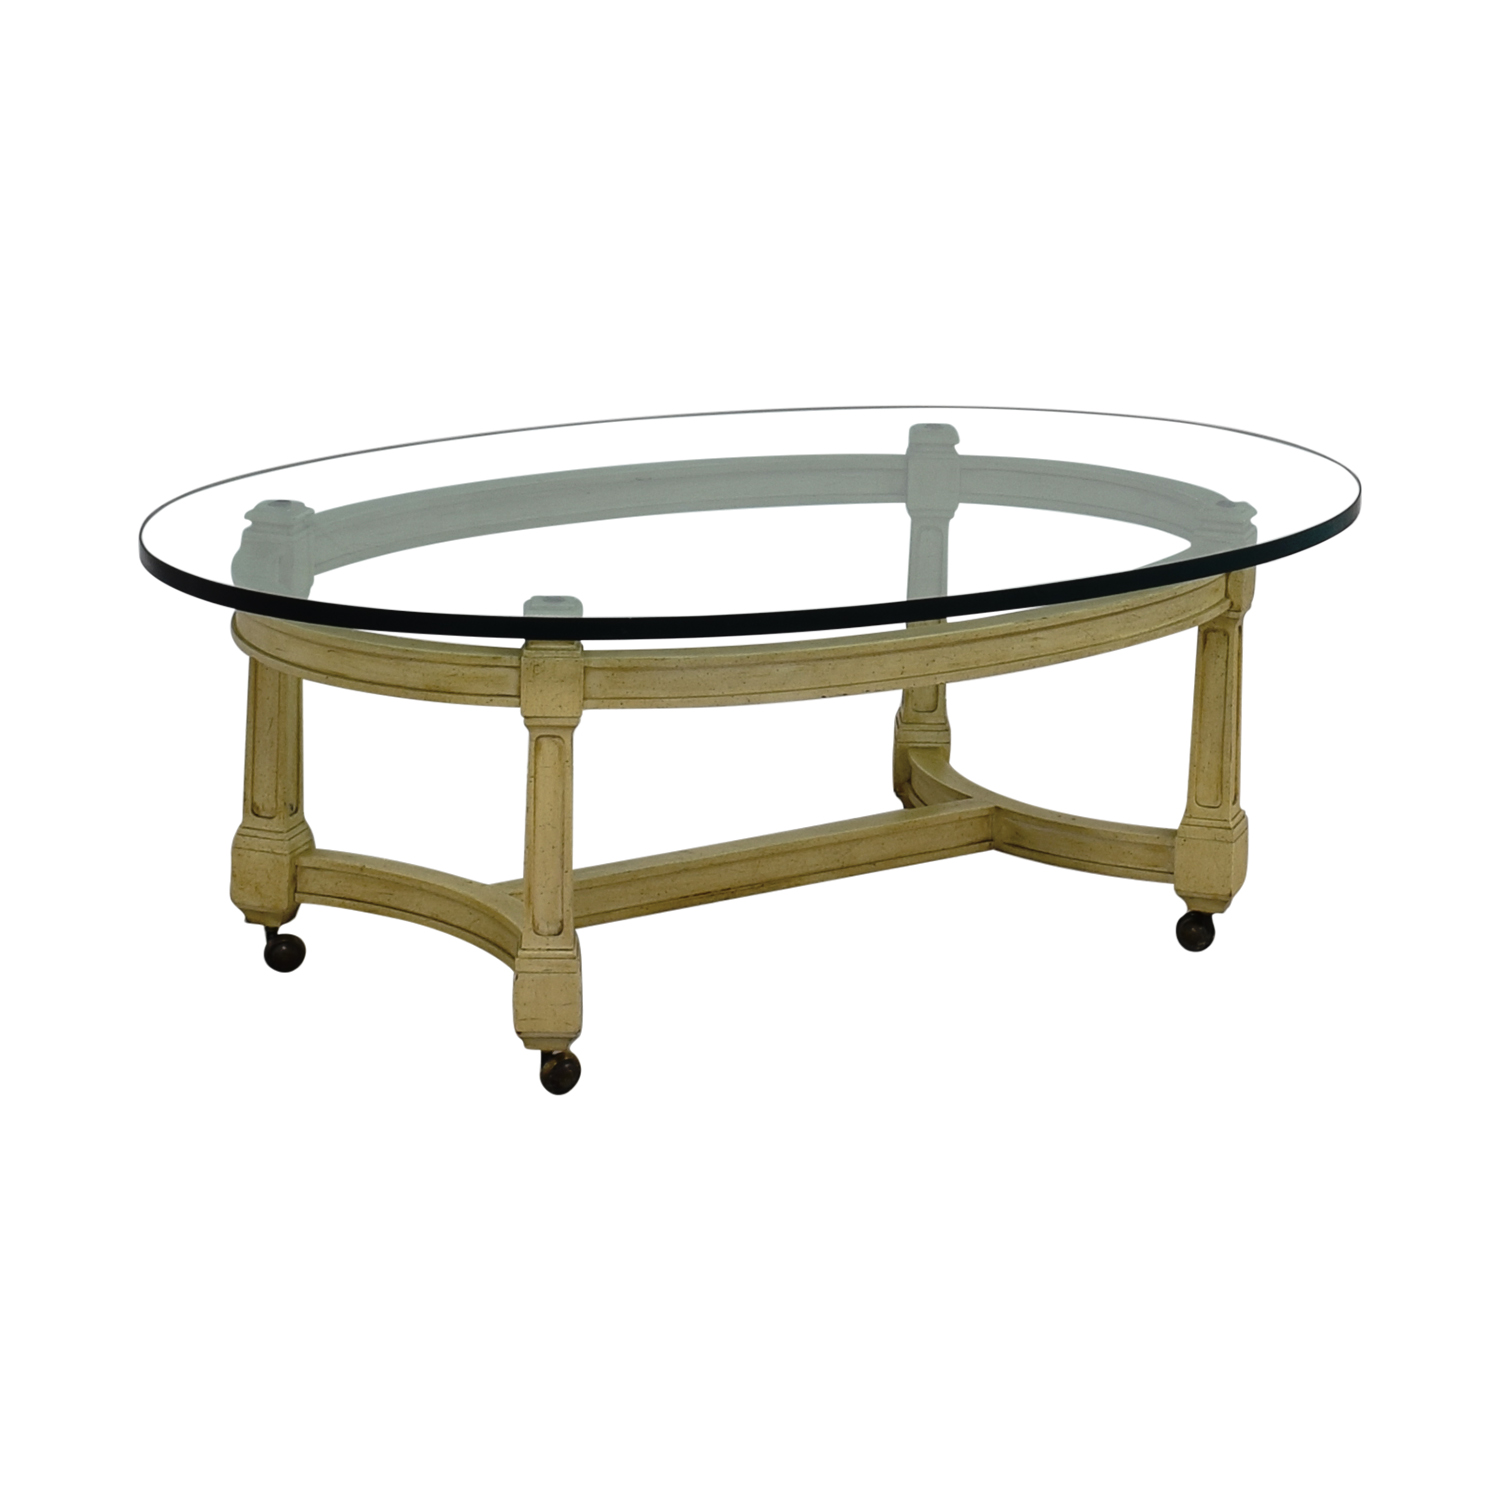 75 Off Off White And Glass Oval Coffee Table On Castors Tables